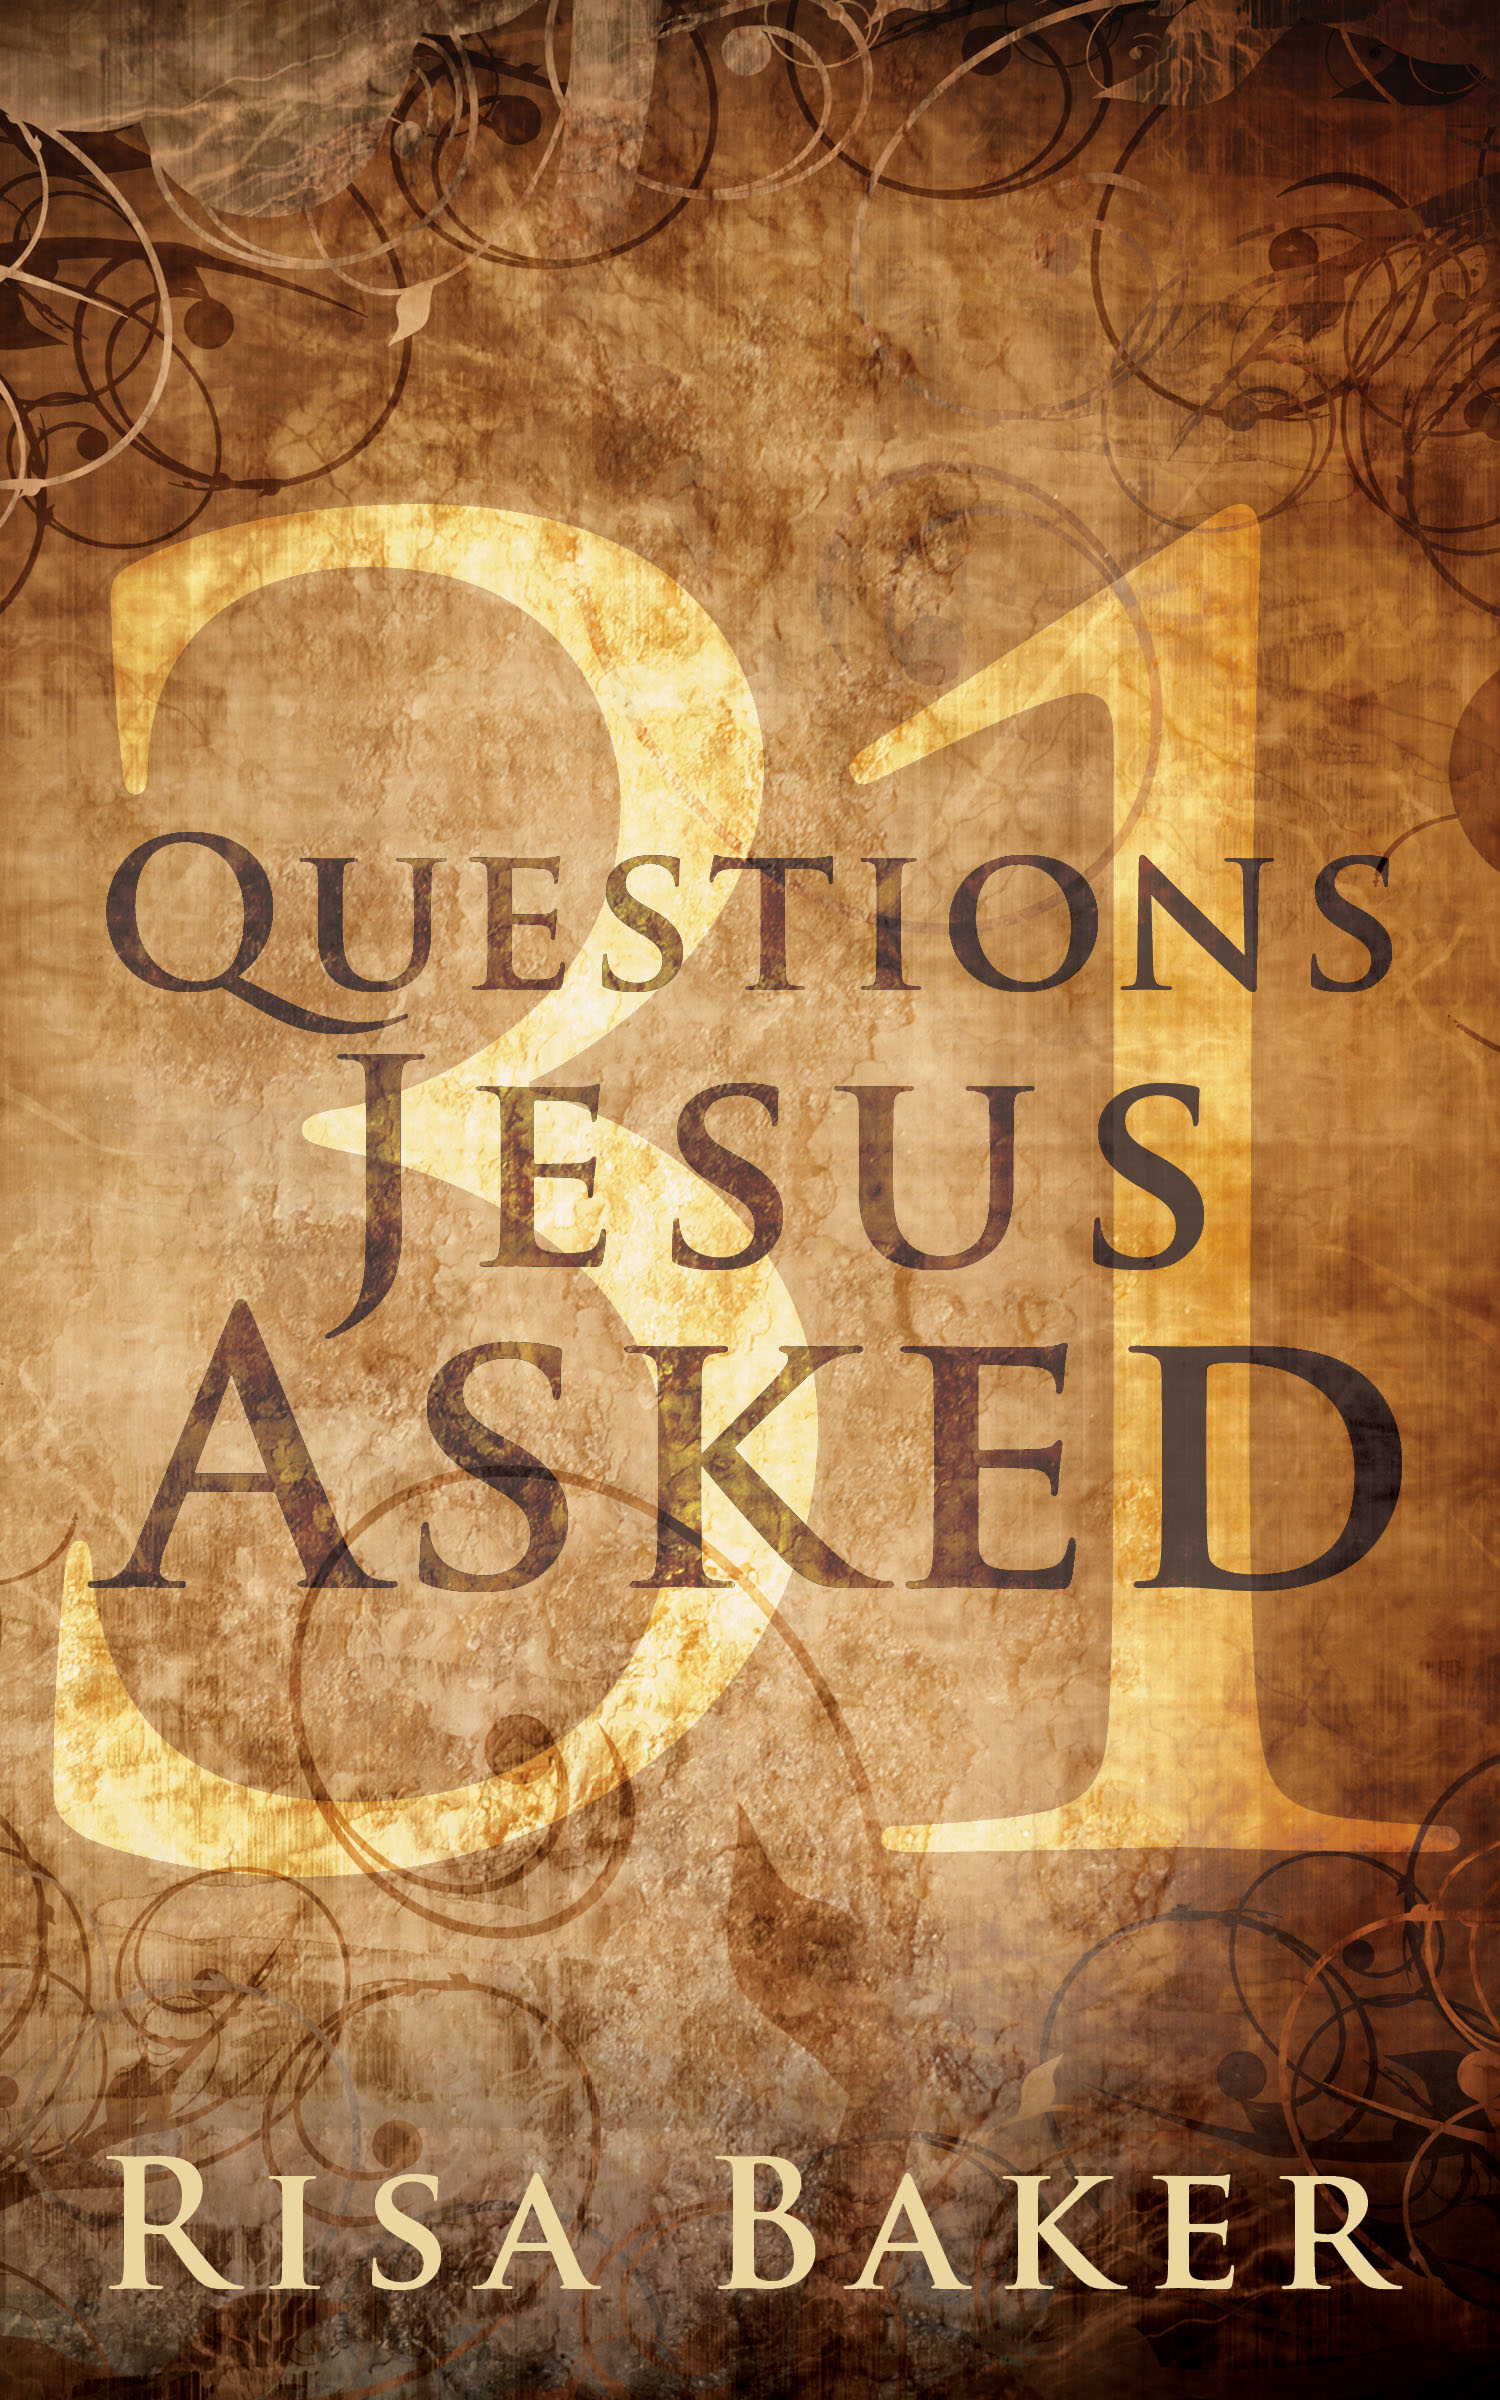 31 Questions Jesus Asked